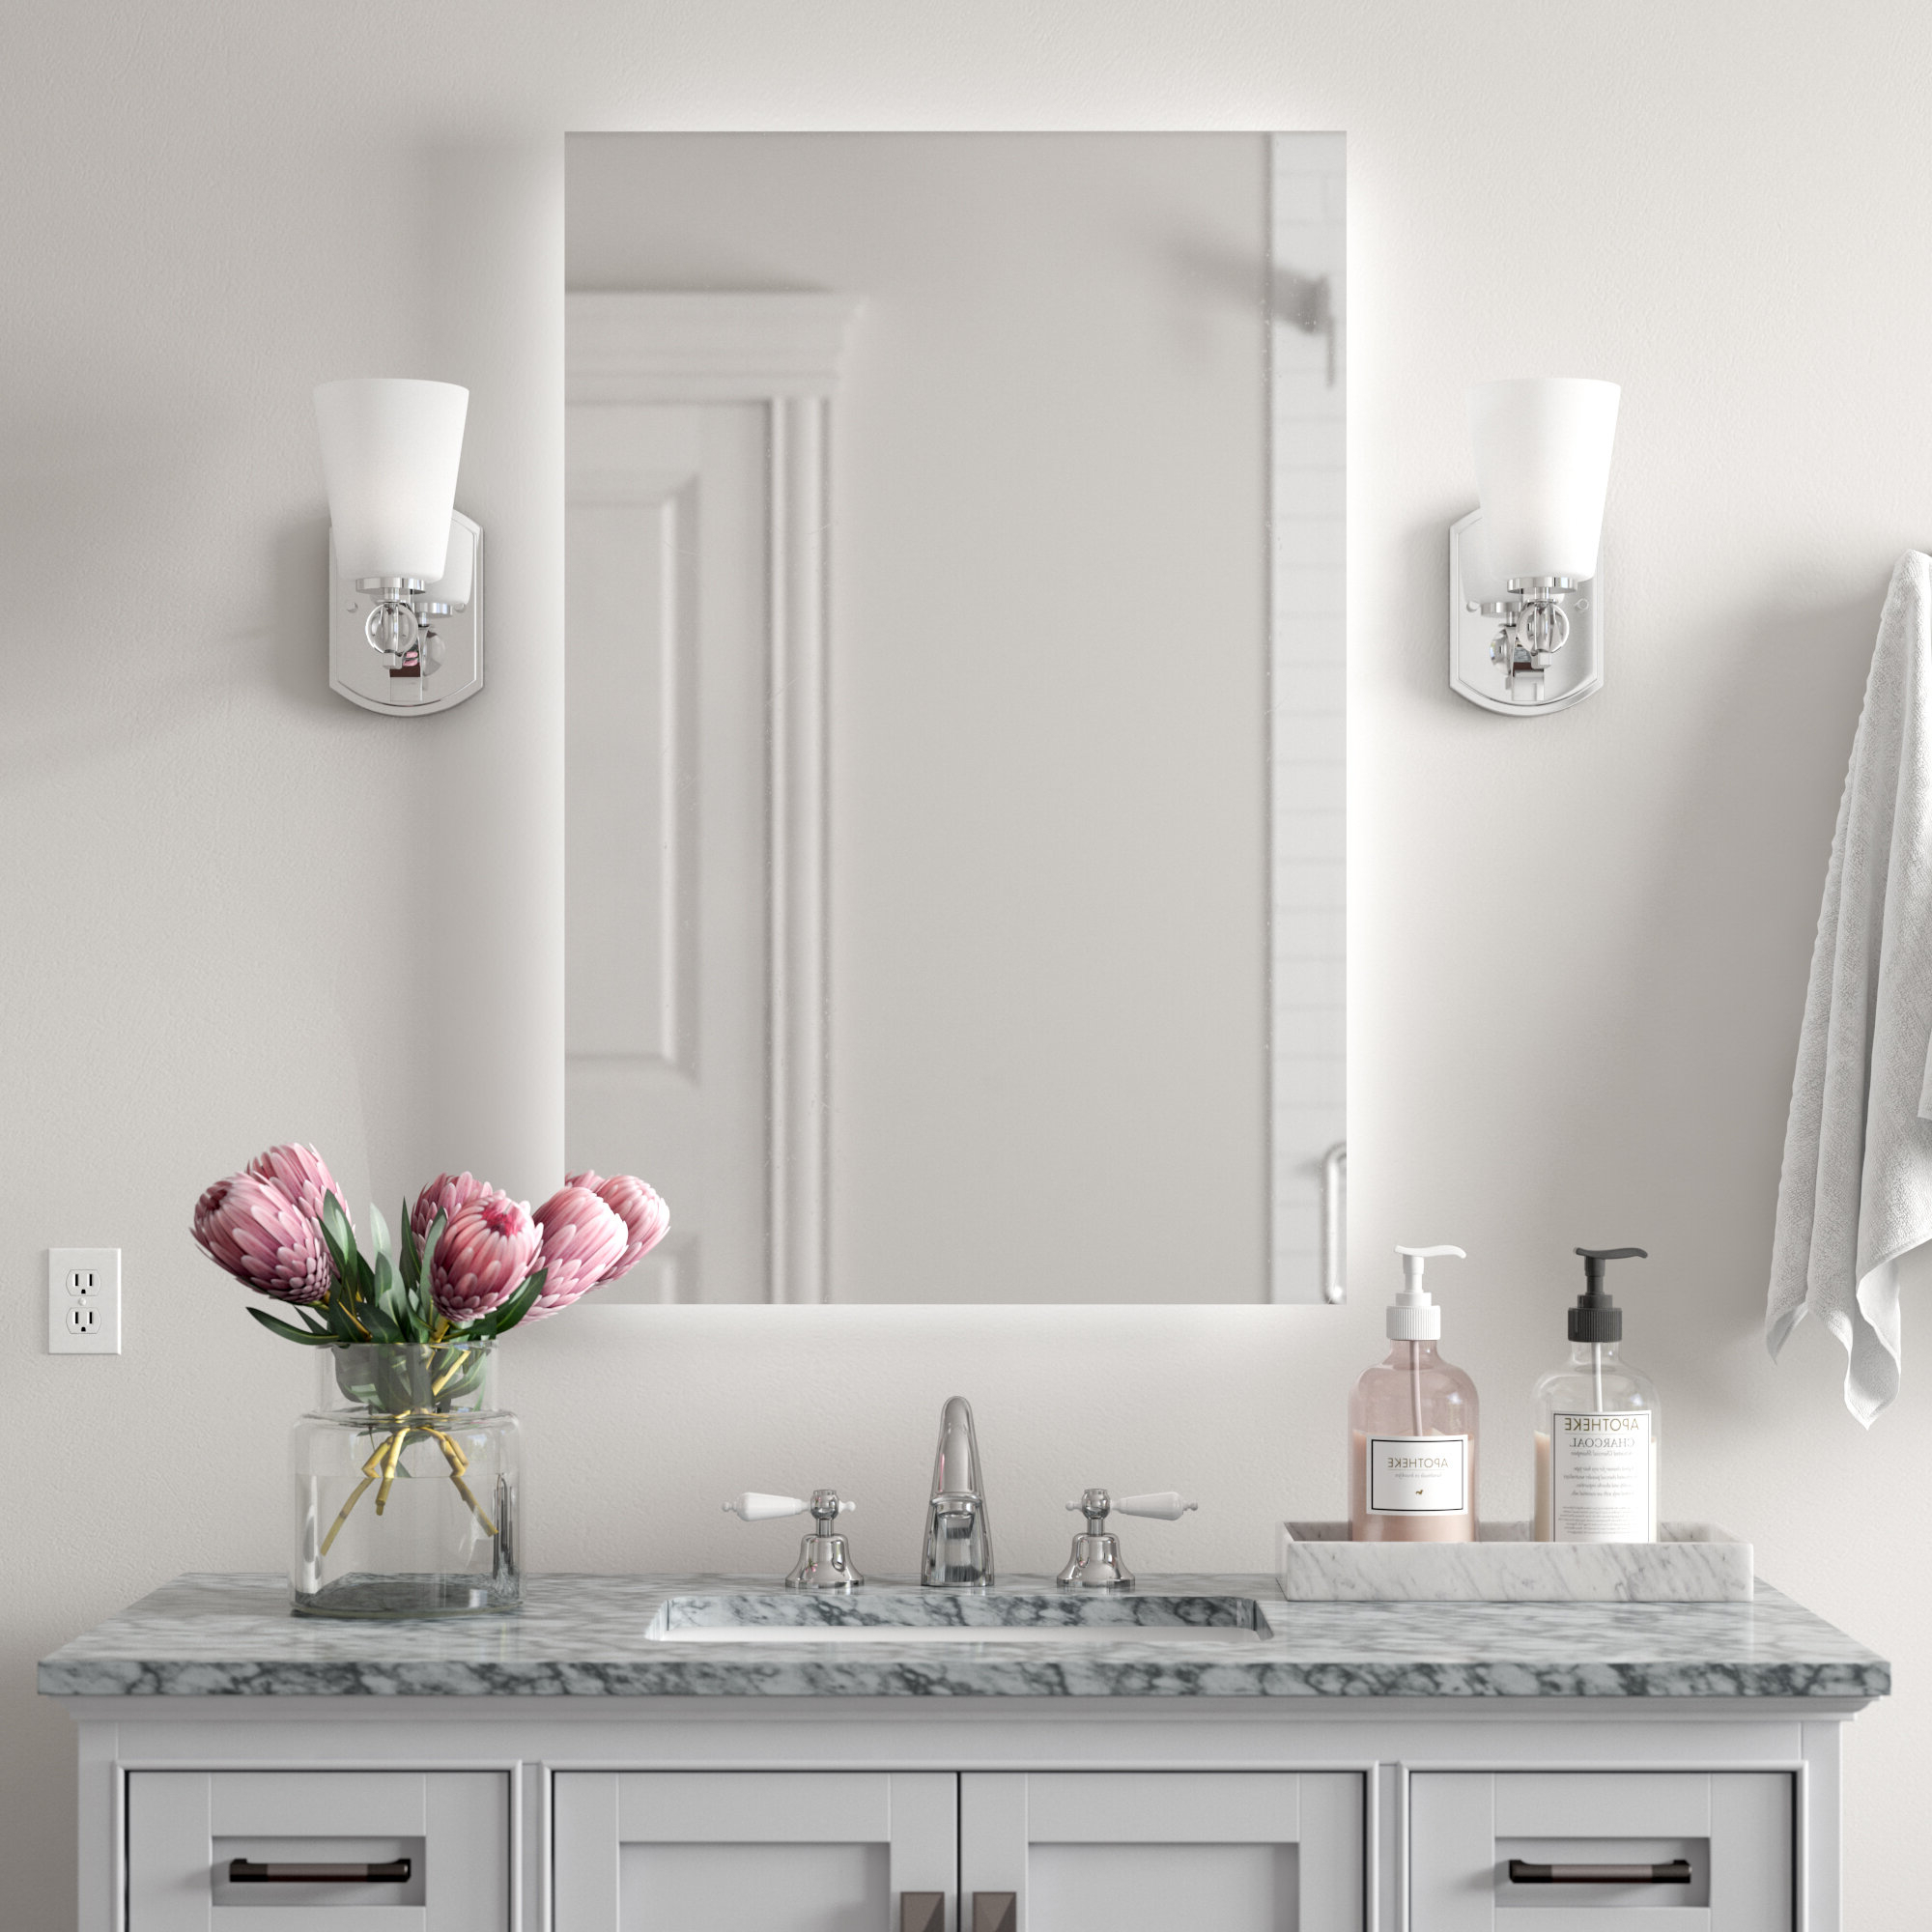 Well Liked Mexborough Bathroom/vanity Mirrors Pertaining To Moumoune Backlit Bathroom/vanity Mirror (View 20 of 20)